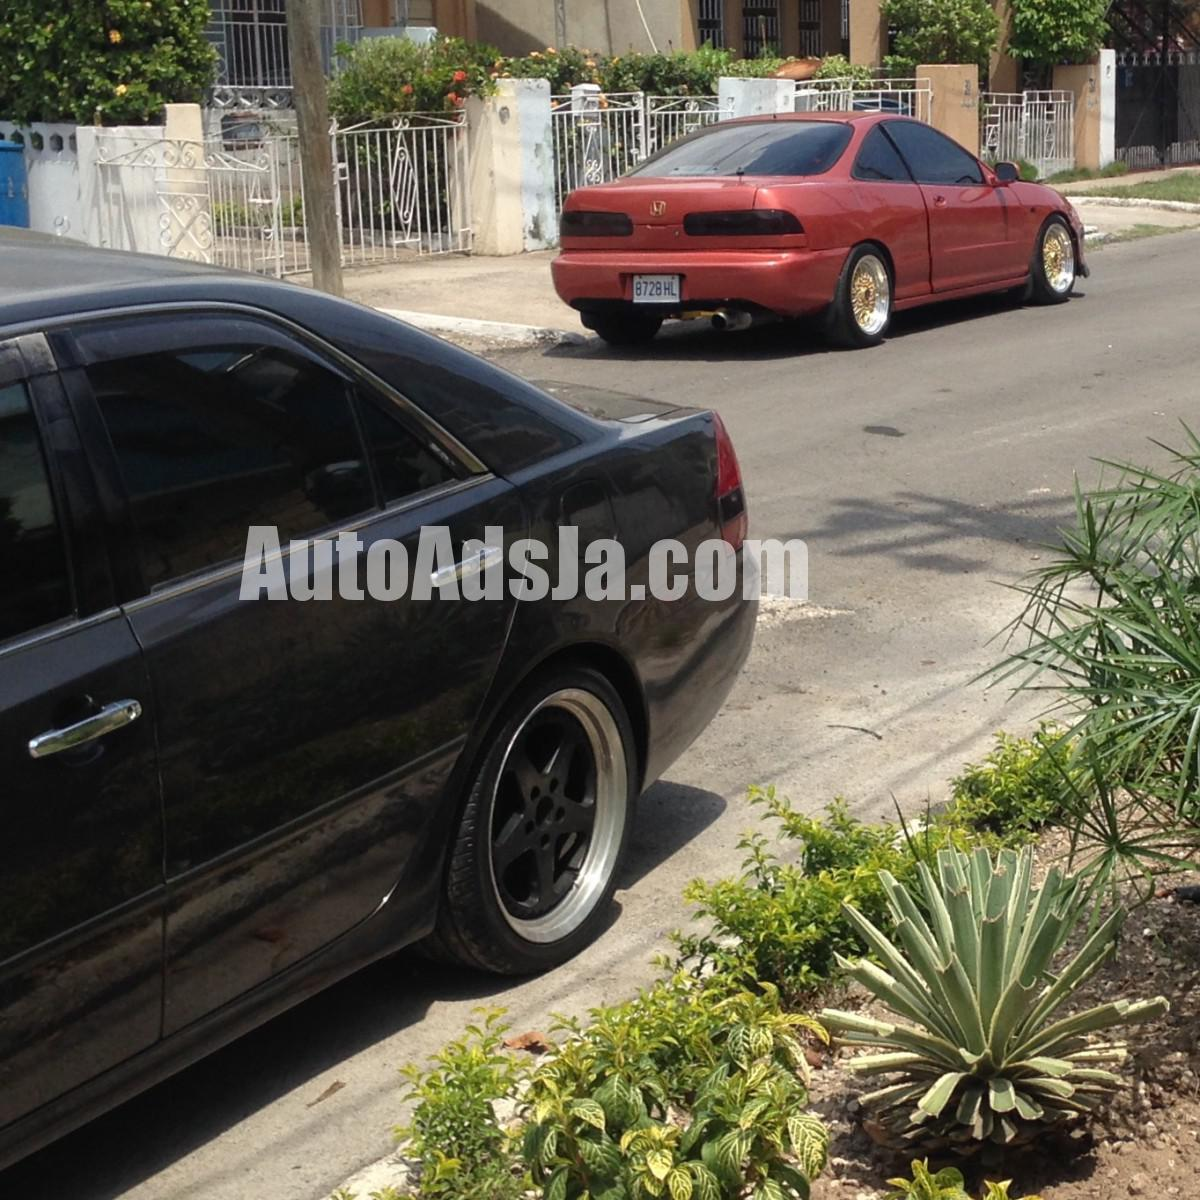 1988 Acura Integra For Sale: 1994 Honda Integra For Sale In Kingston / St. Andrew